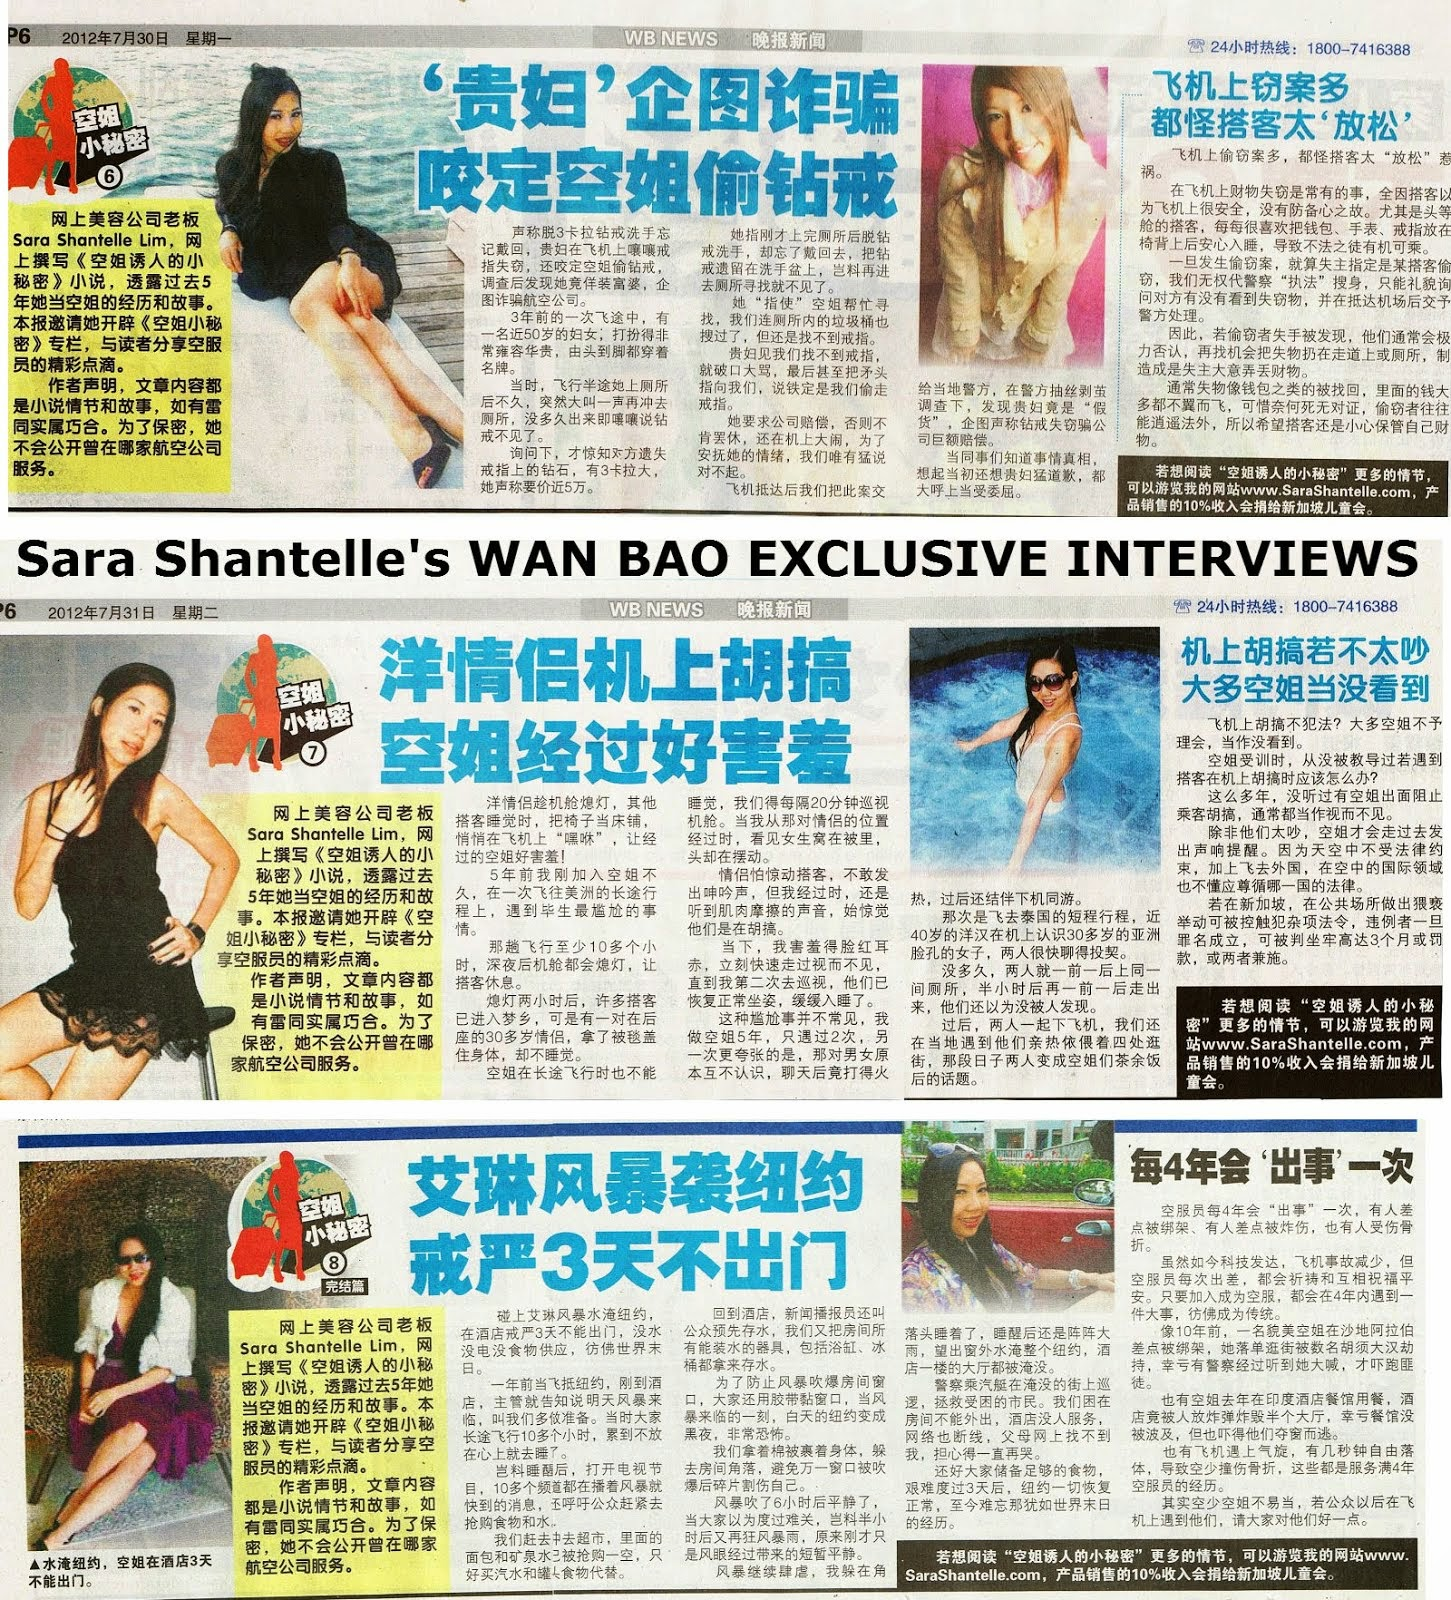 Sara Shantelle in WANBAO CHINESE NEWSPAPERS